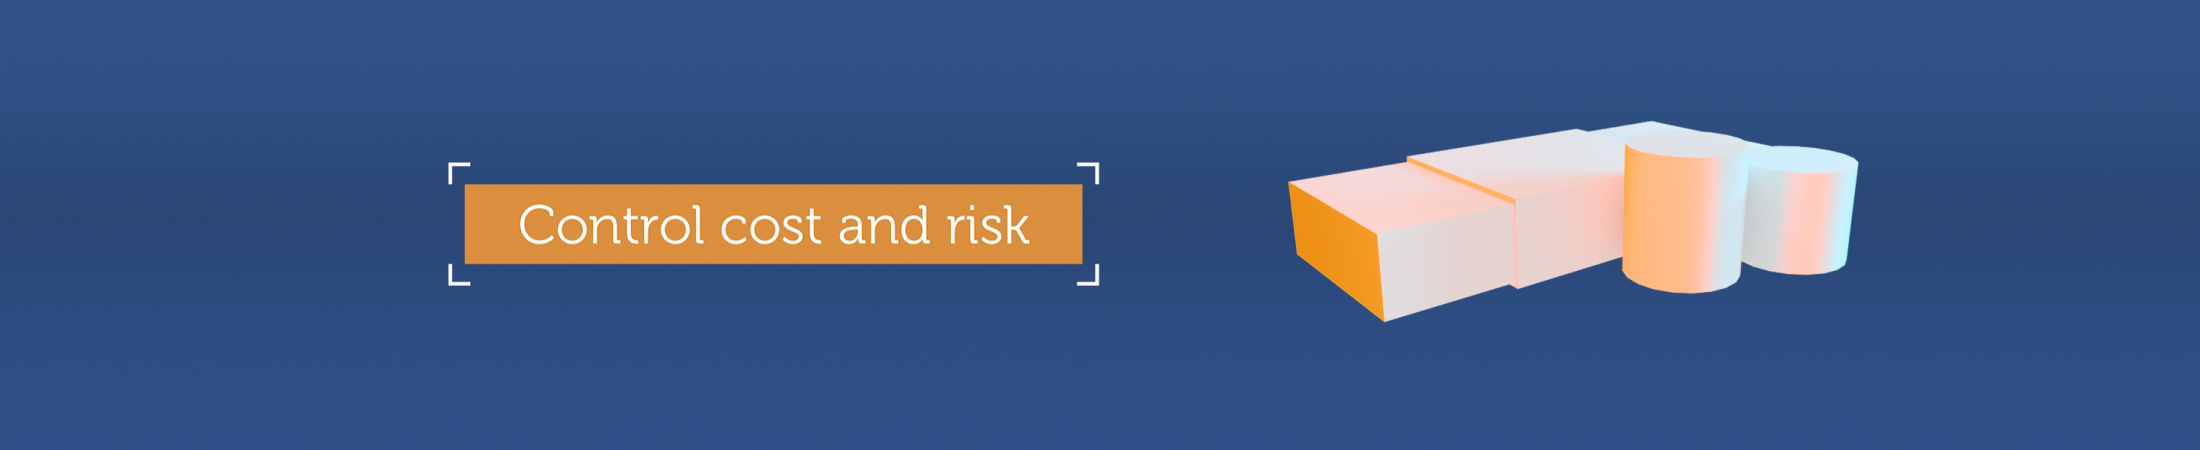 Control cost and risk - mobilebanner